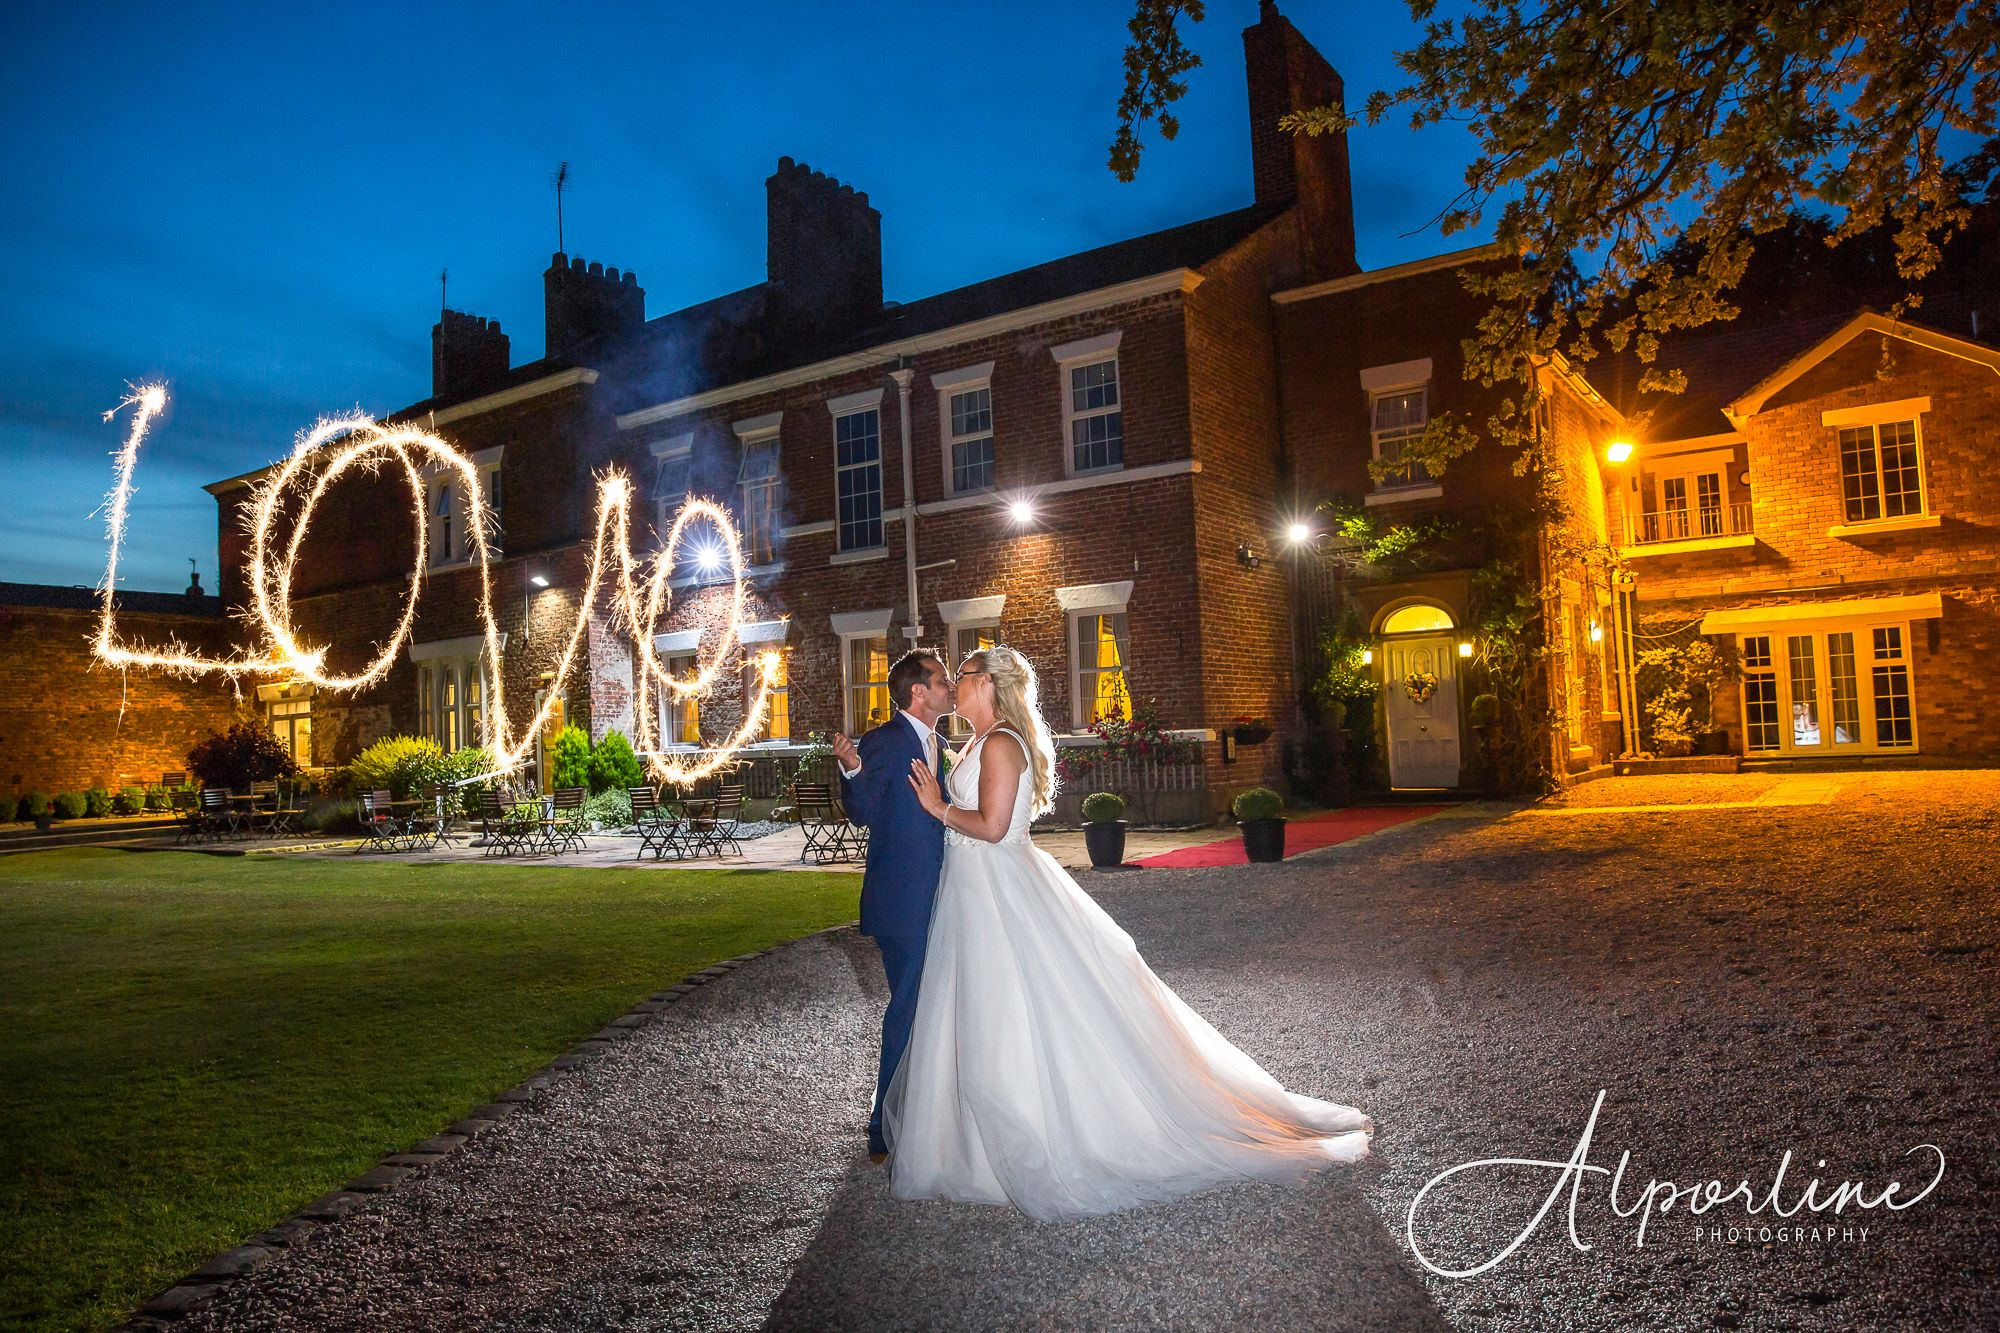 Singleton-lodge-wedding-photograph-fylde-wedding-photographer.jpg